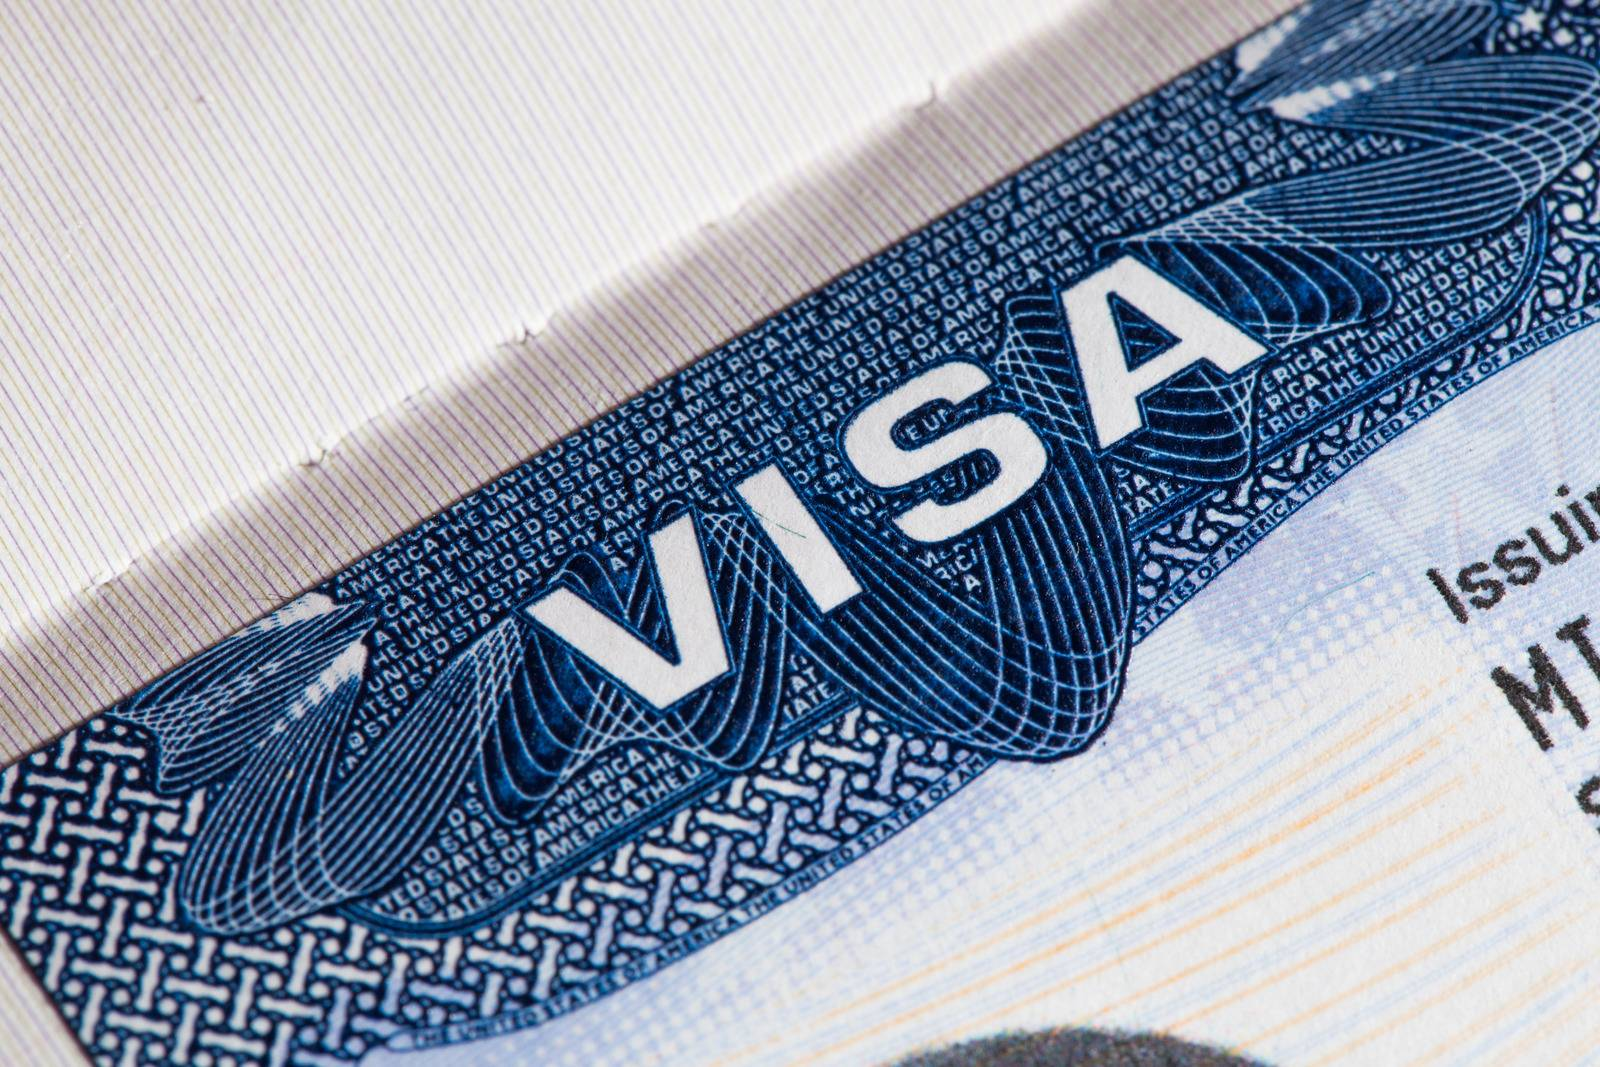 H1B Visas: How To Navigate Current Affairs